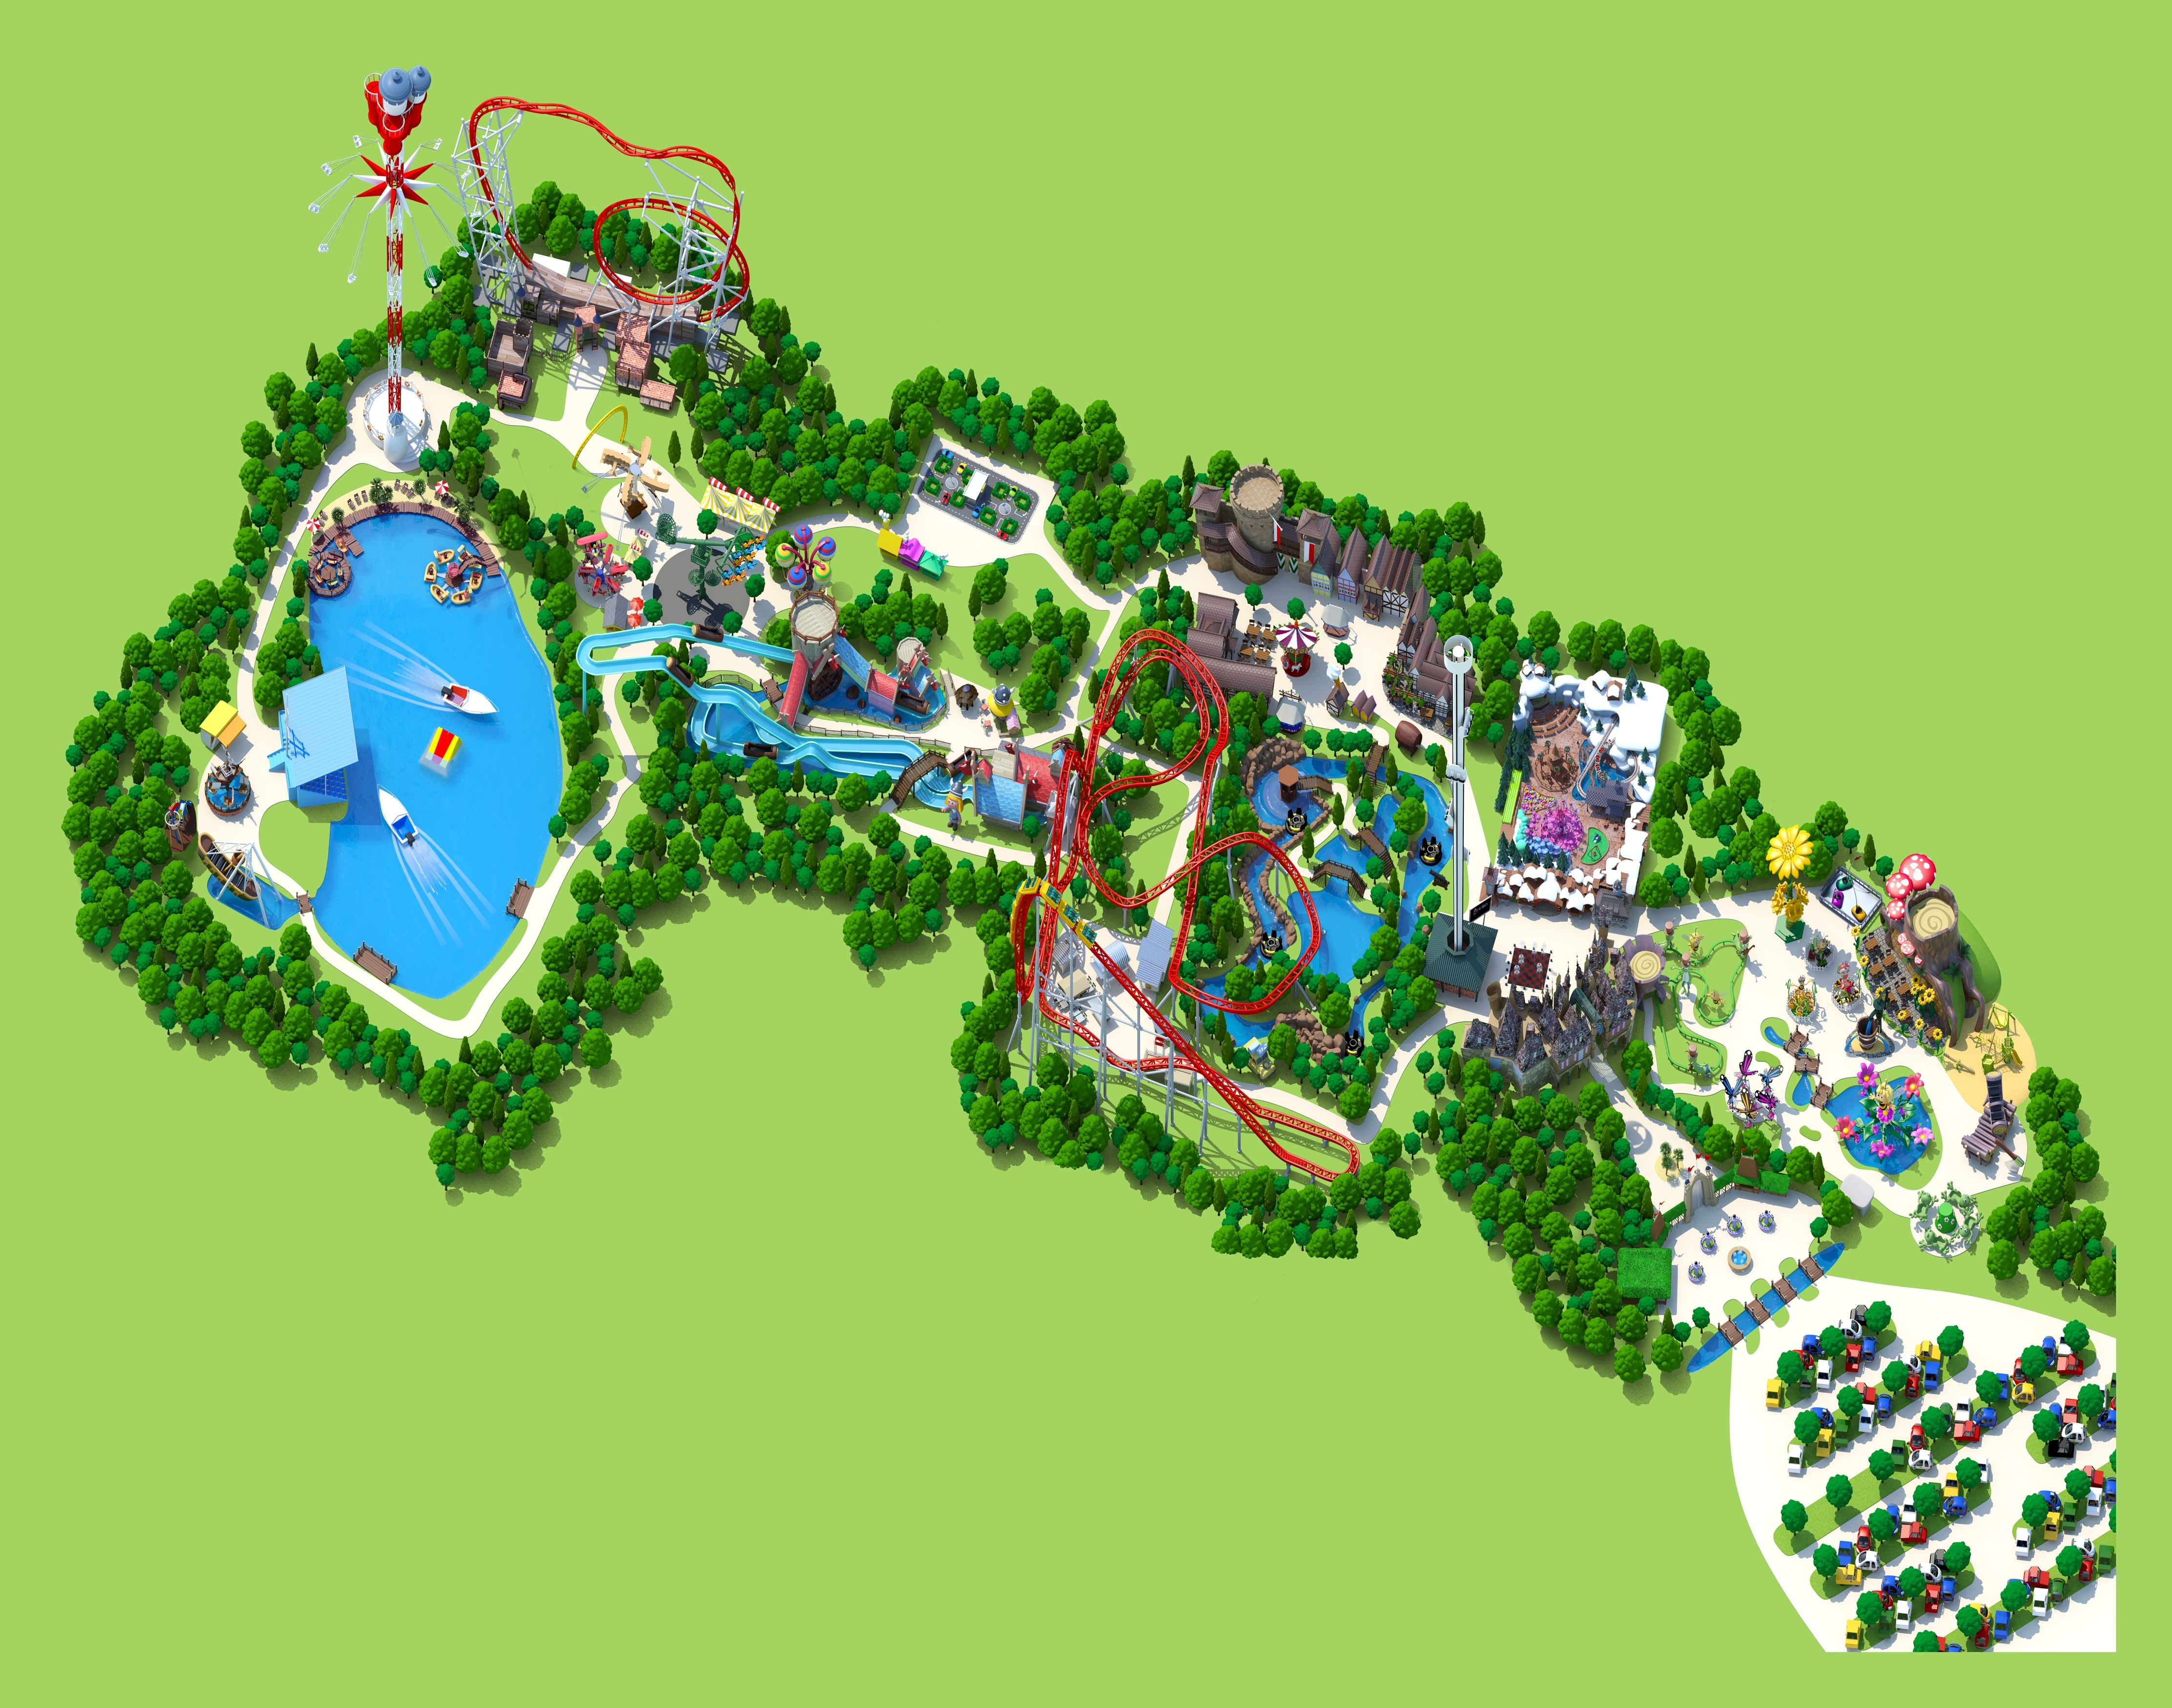 Park Map | Holiday Park intended for Map Of Europa Park Germany